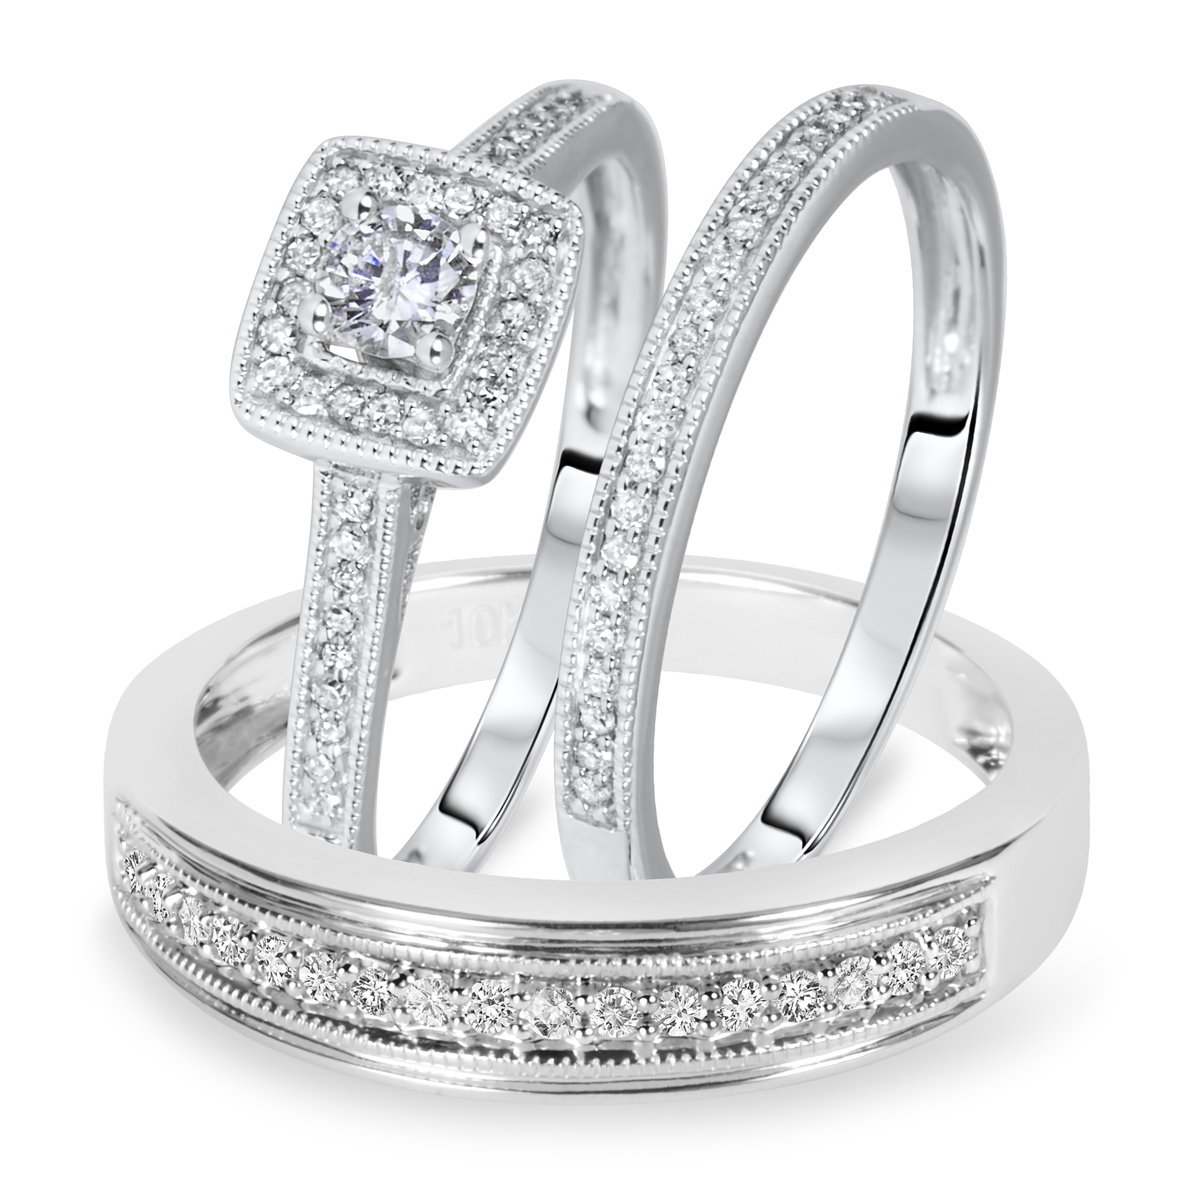 12 carat tw round cut diamond matching trio wedding ring set 10k white gold my trio rings bt572w10k - Wedding Ring Trio Sets